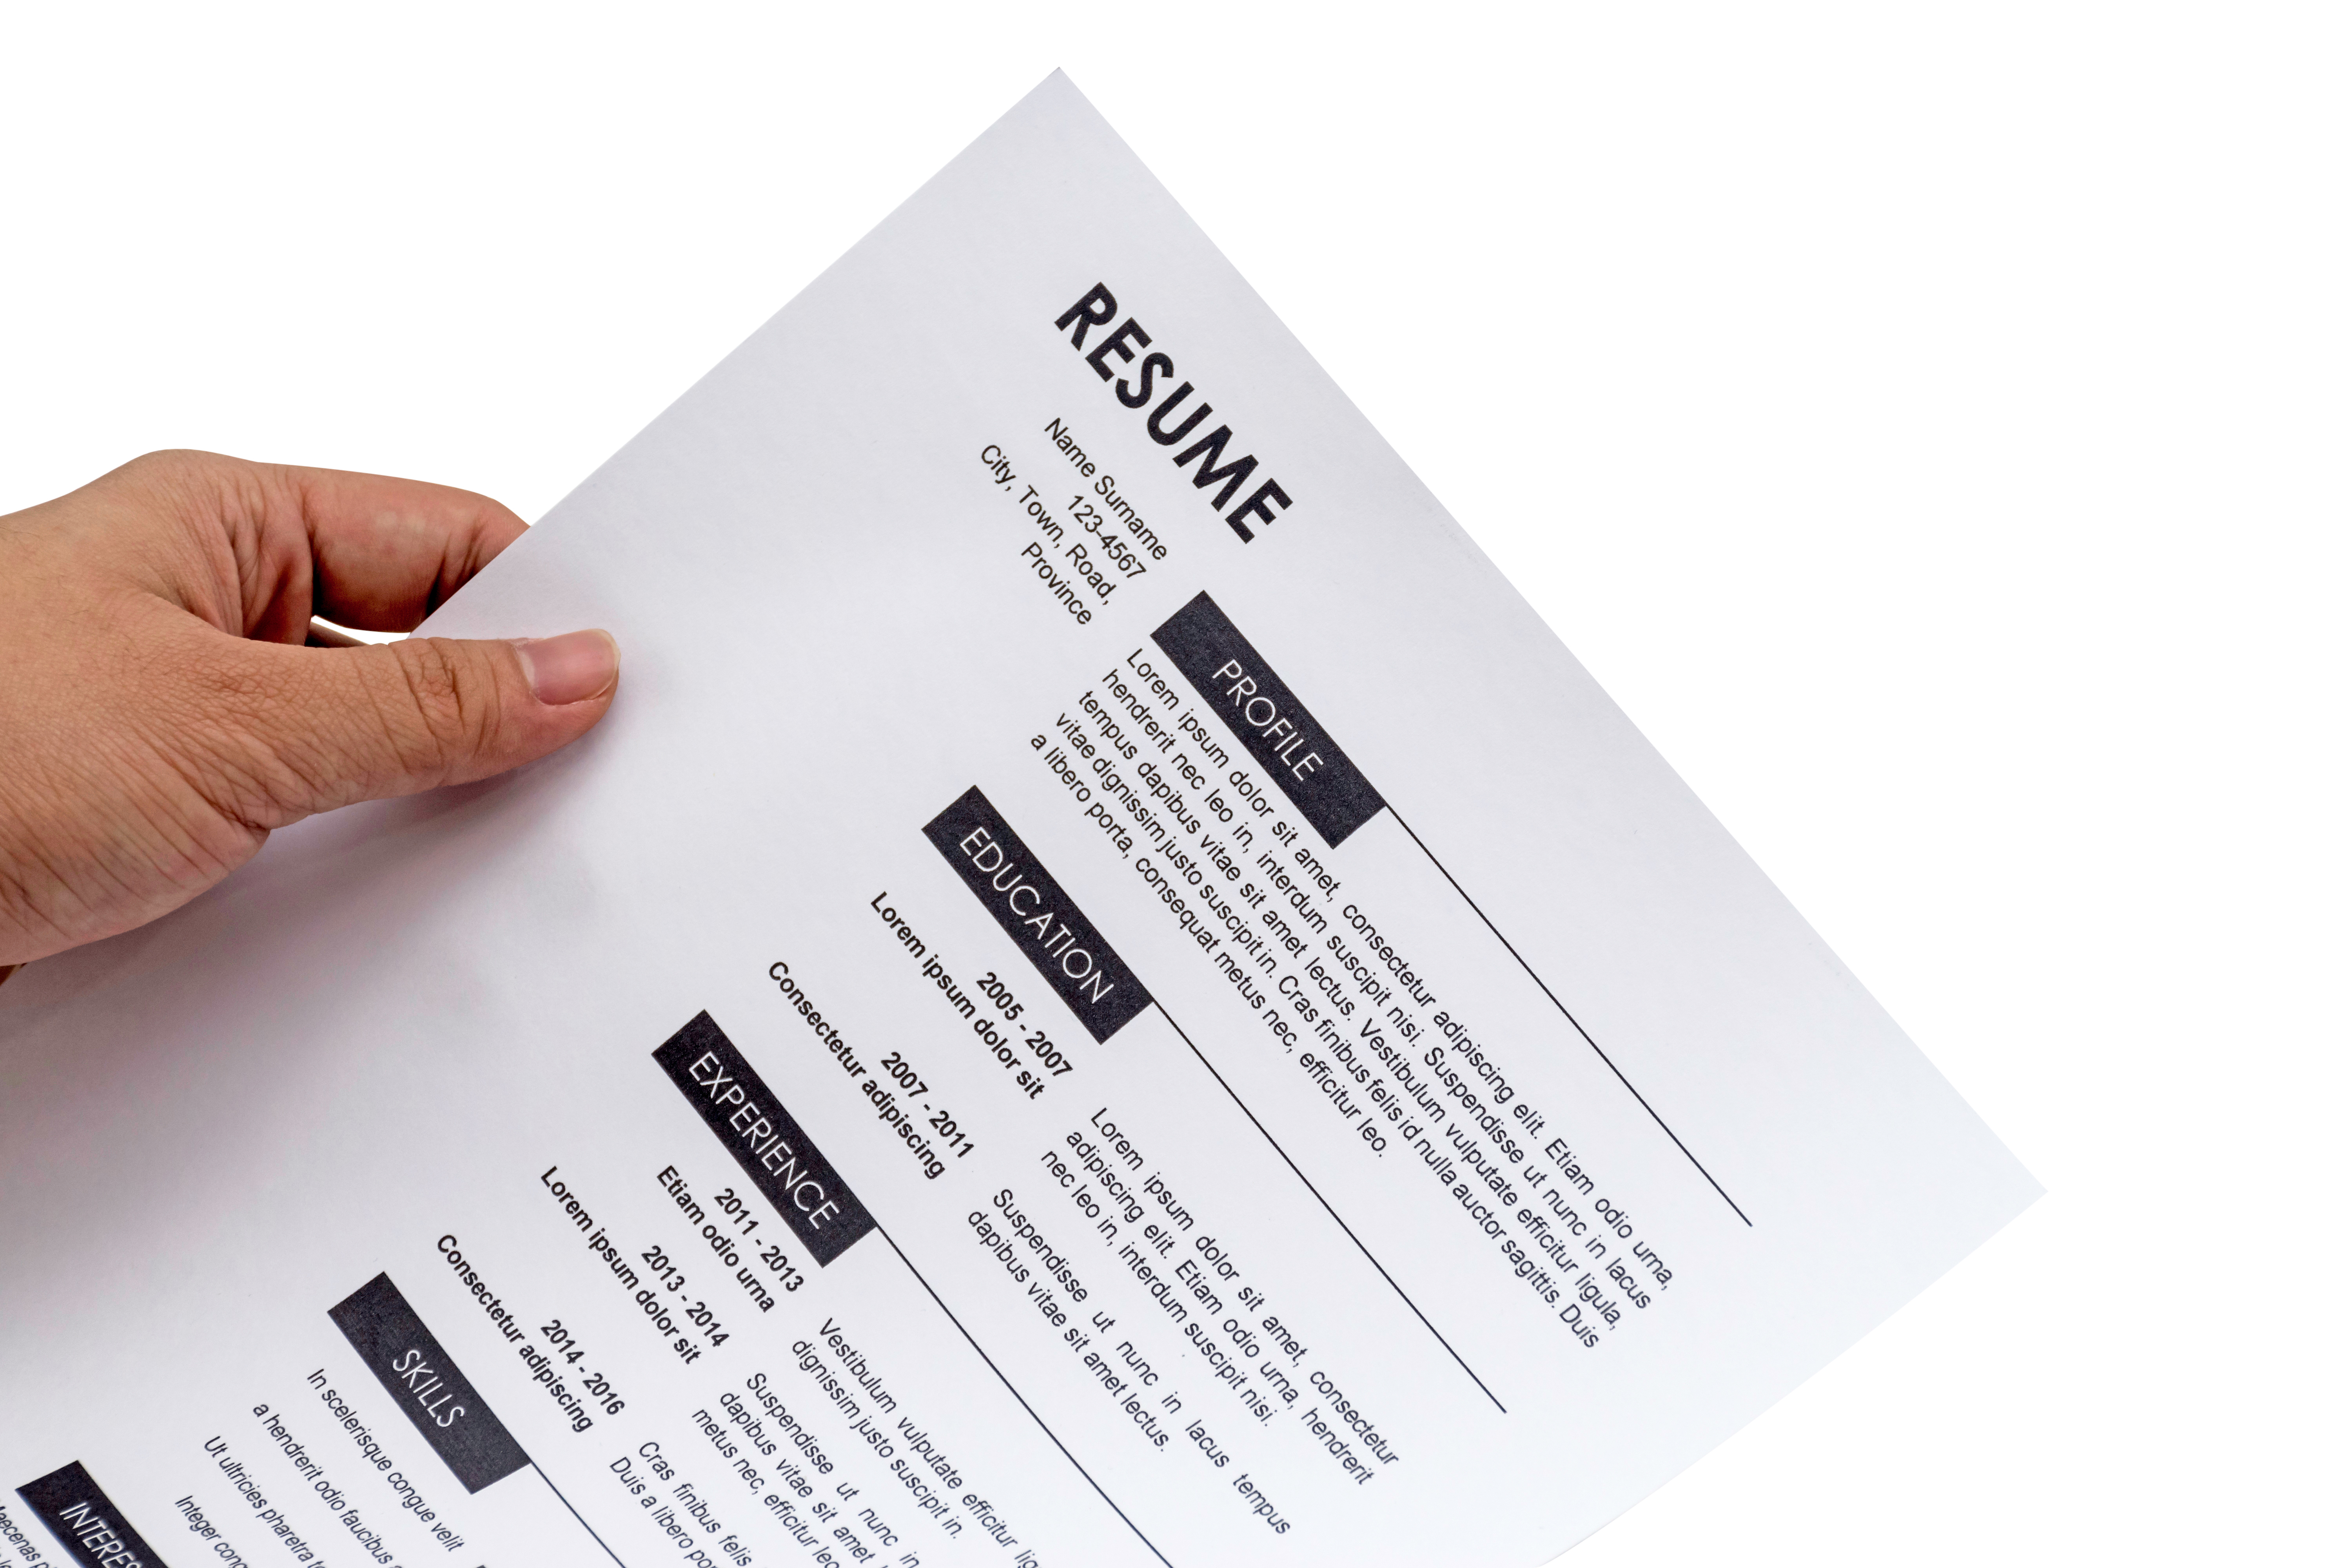 How to List a Merged Company on a Resume | Bizfluent